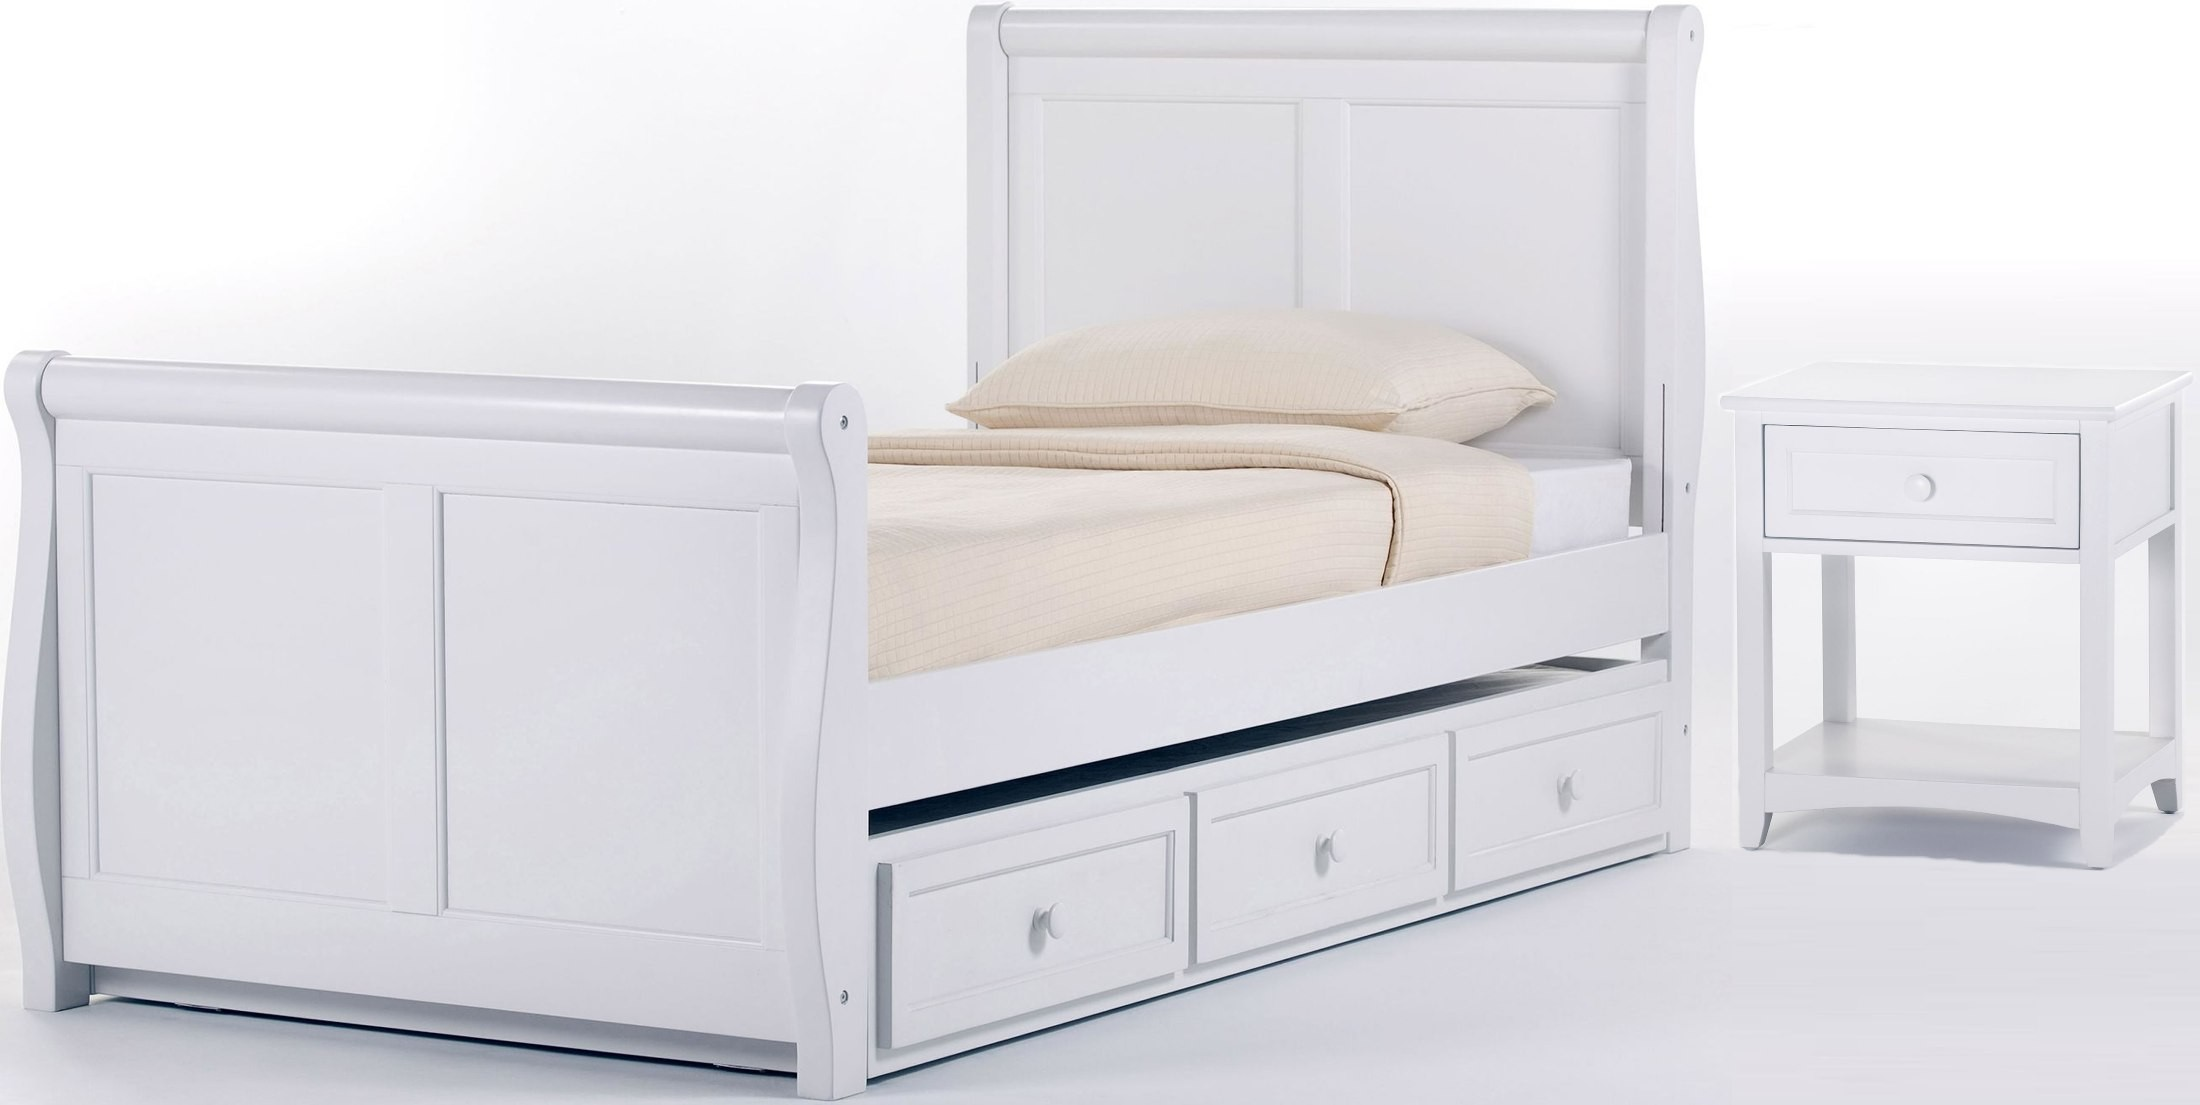 School house white youth sleigh bedroom set with trundle 7050nt ne kids White twin trundle bedroom set